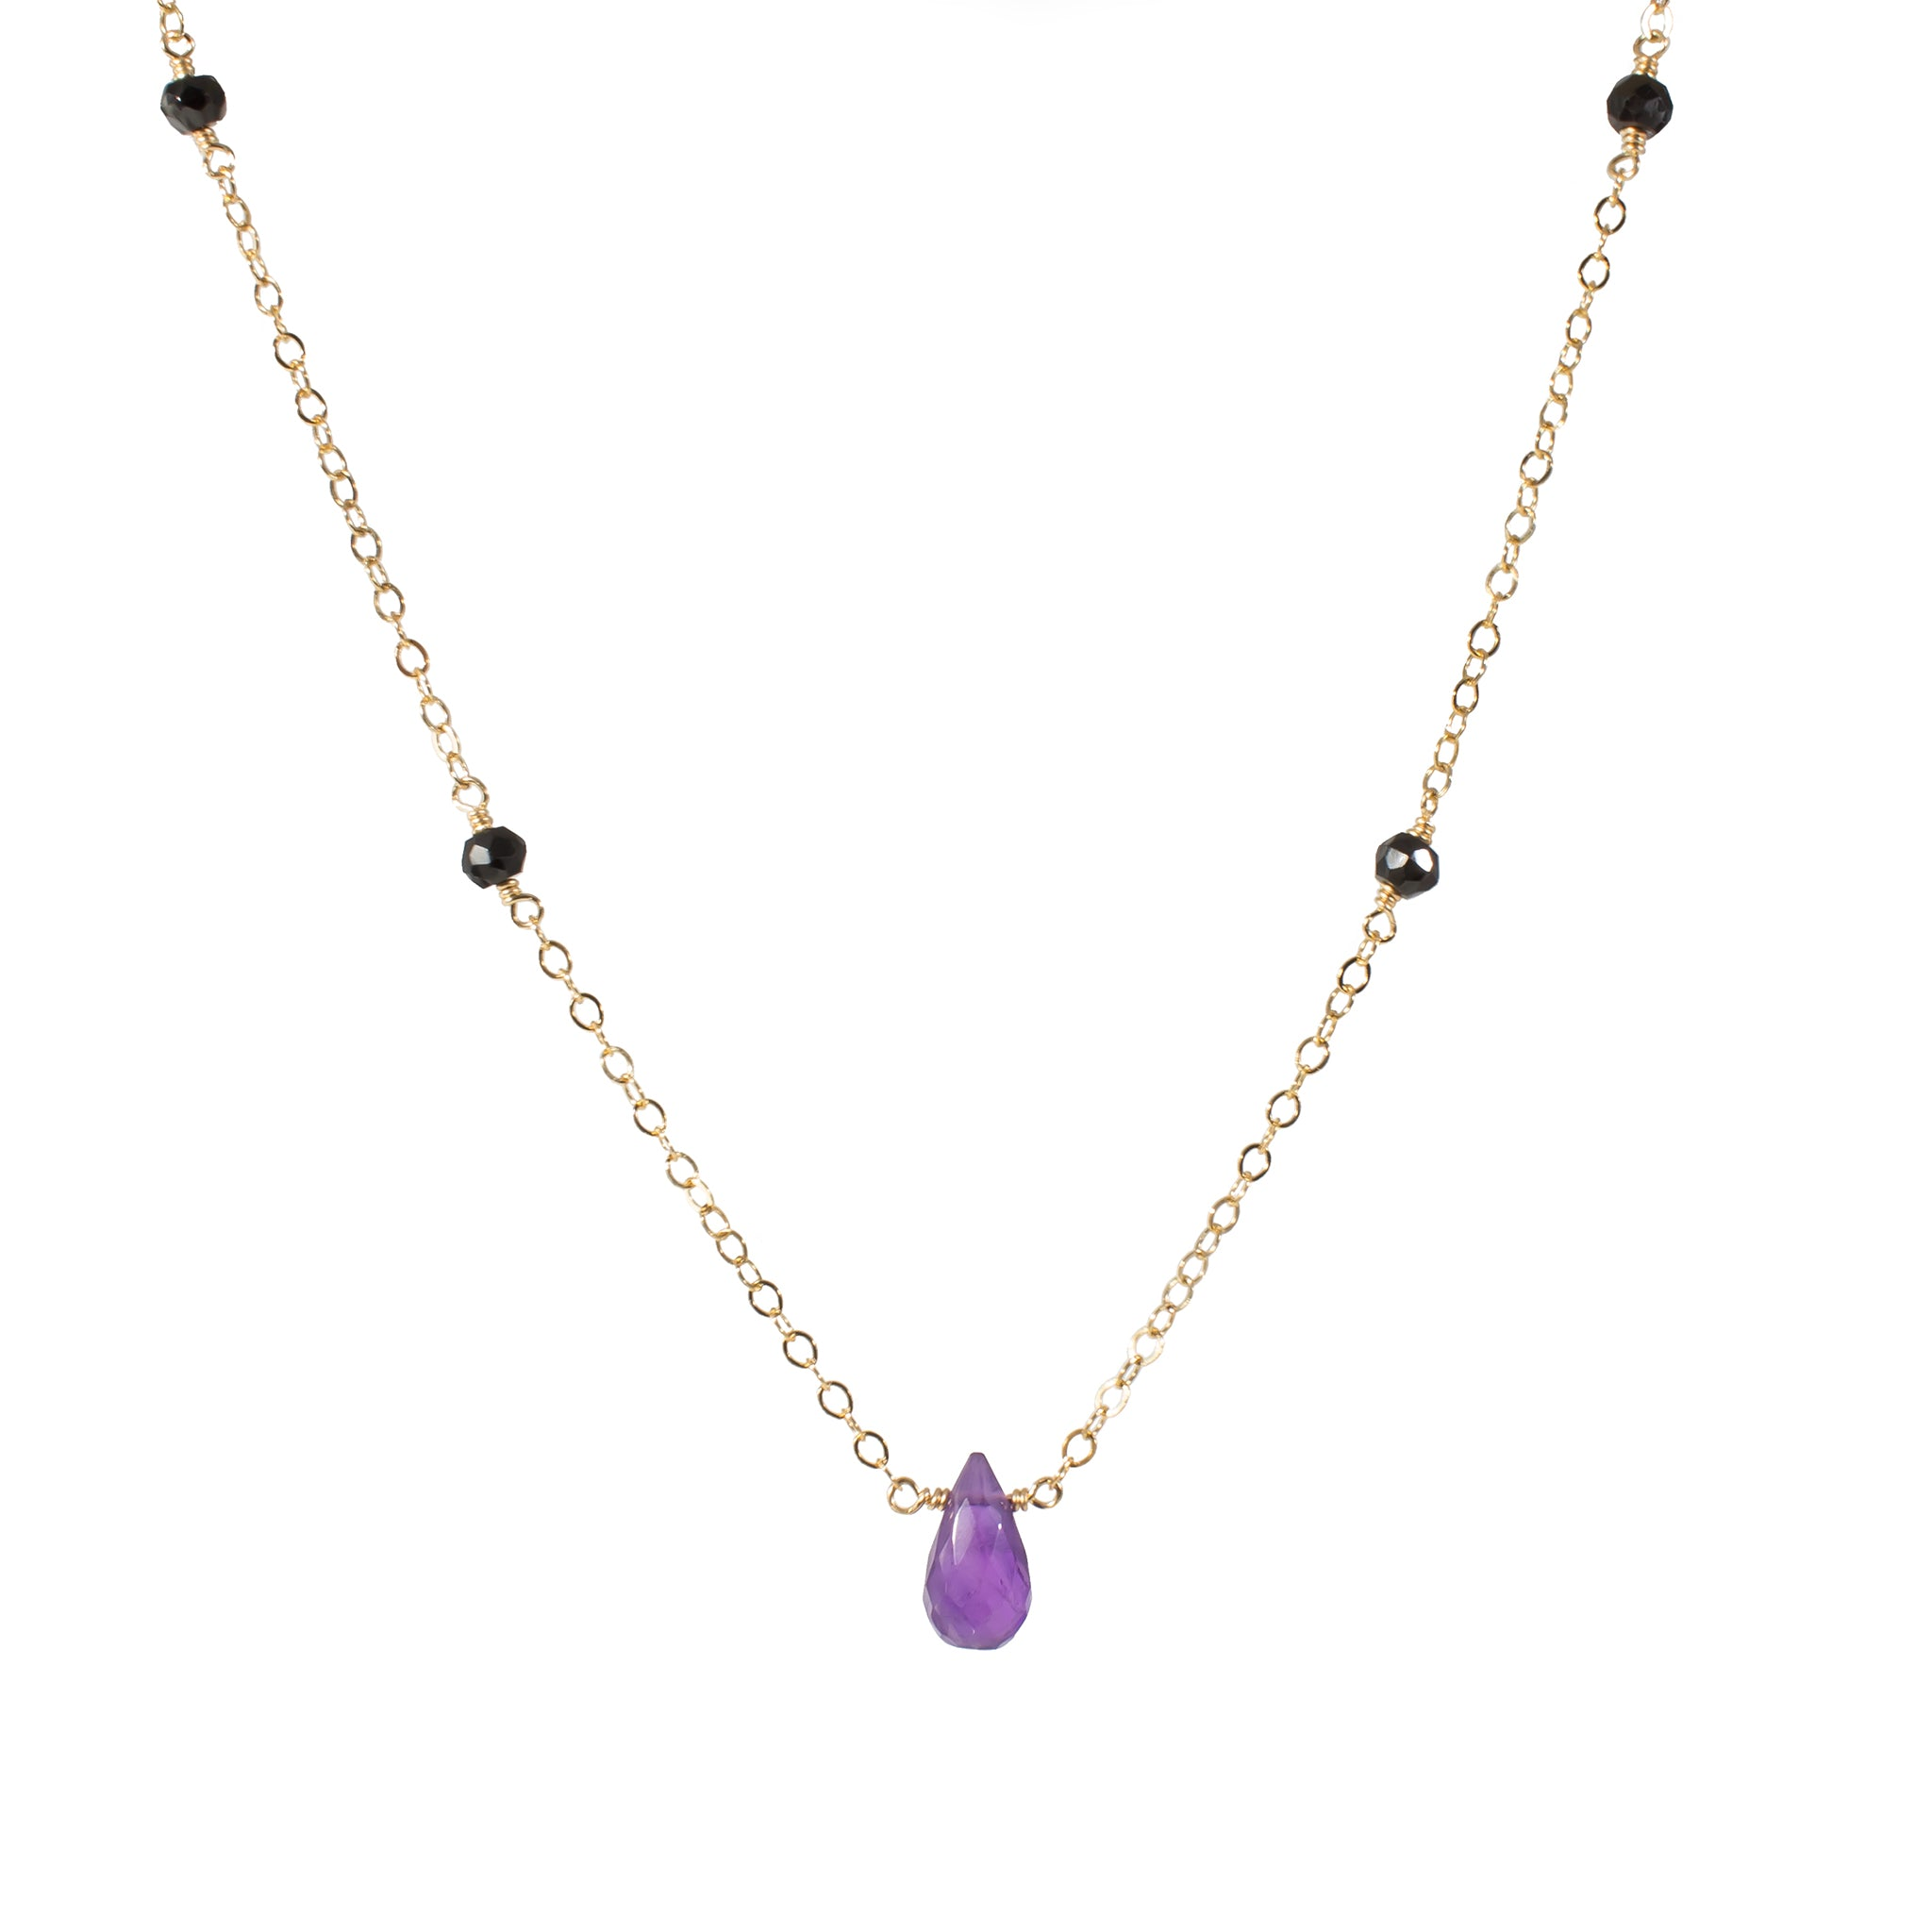 burma rose gold and noble william product necklace spinel